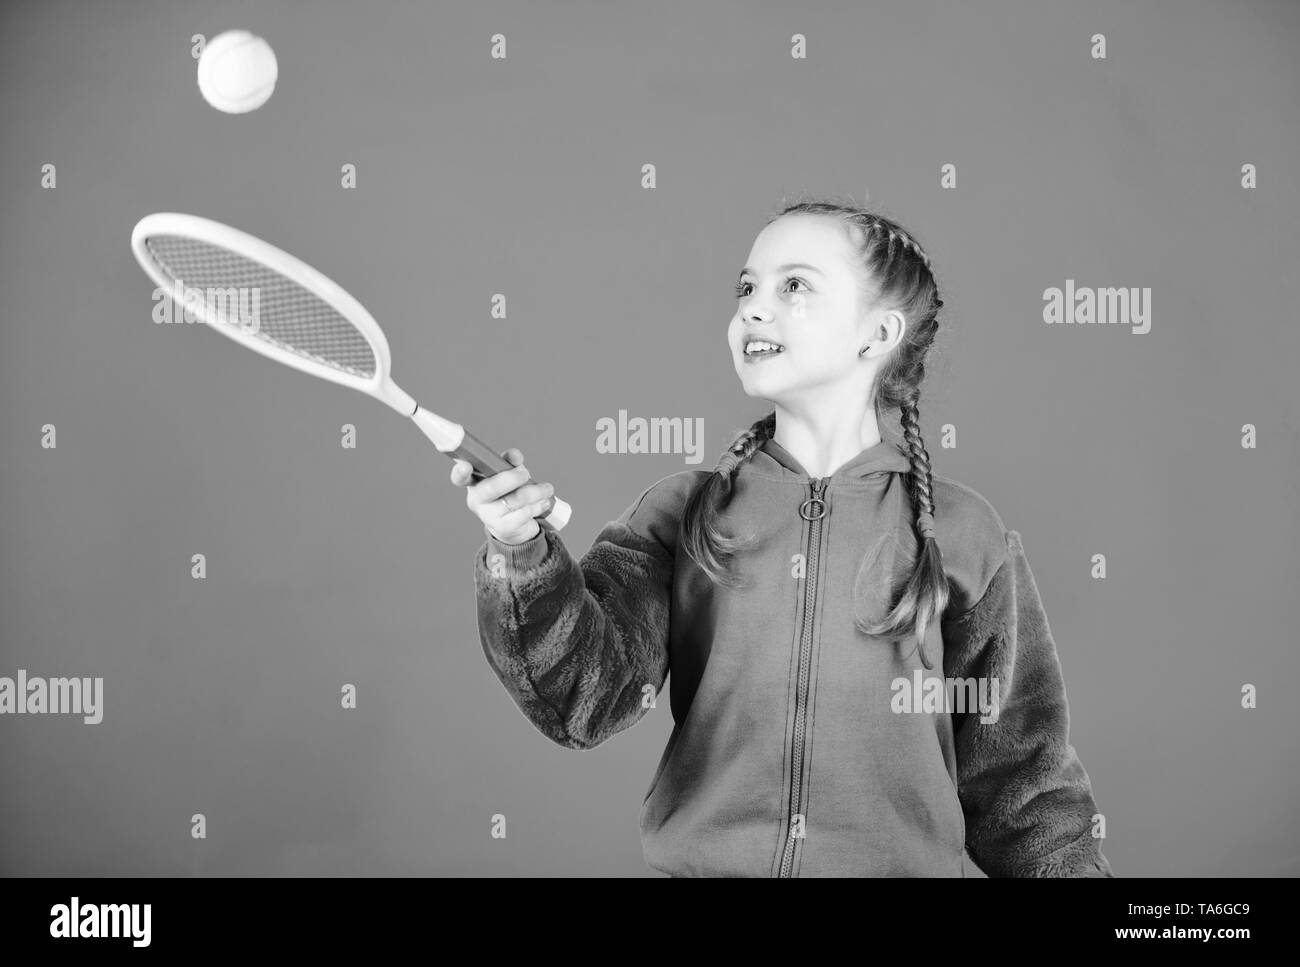 Tennis player with racket and ball. Little teen girl. Fitness diet brings health and energy. Happy child teen girl play tennis. Sport game success. Gym workout of teen girl. teen girl practice skills. - Stock Image